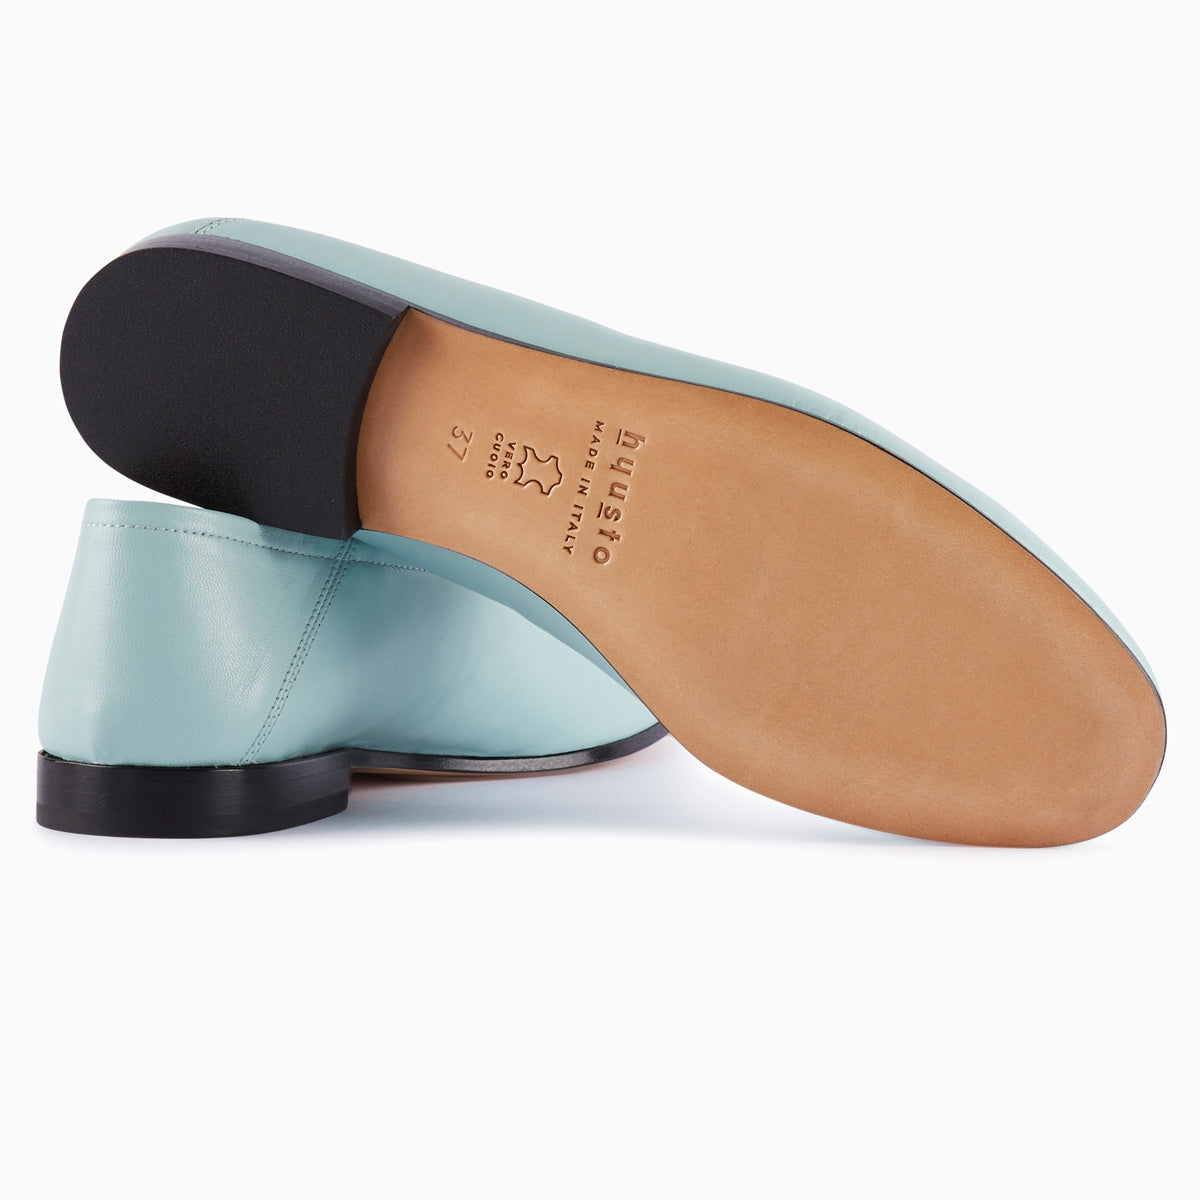 Hyusto Debbie Loafer Mint Glove bottom view sole